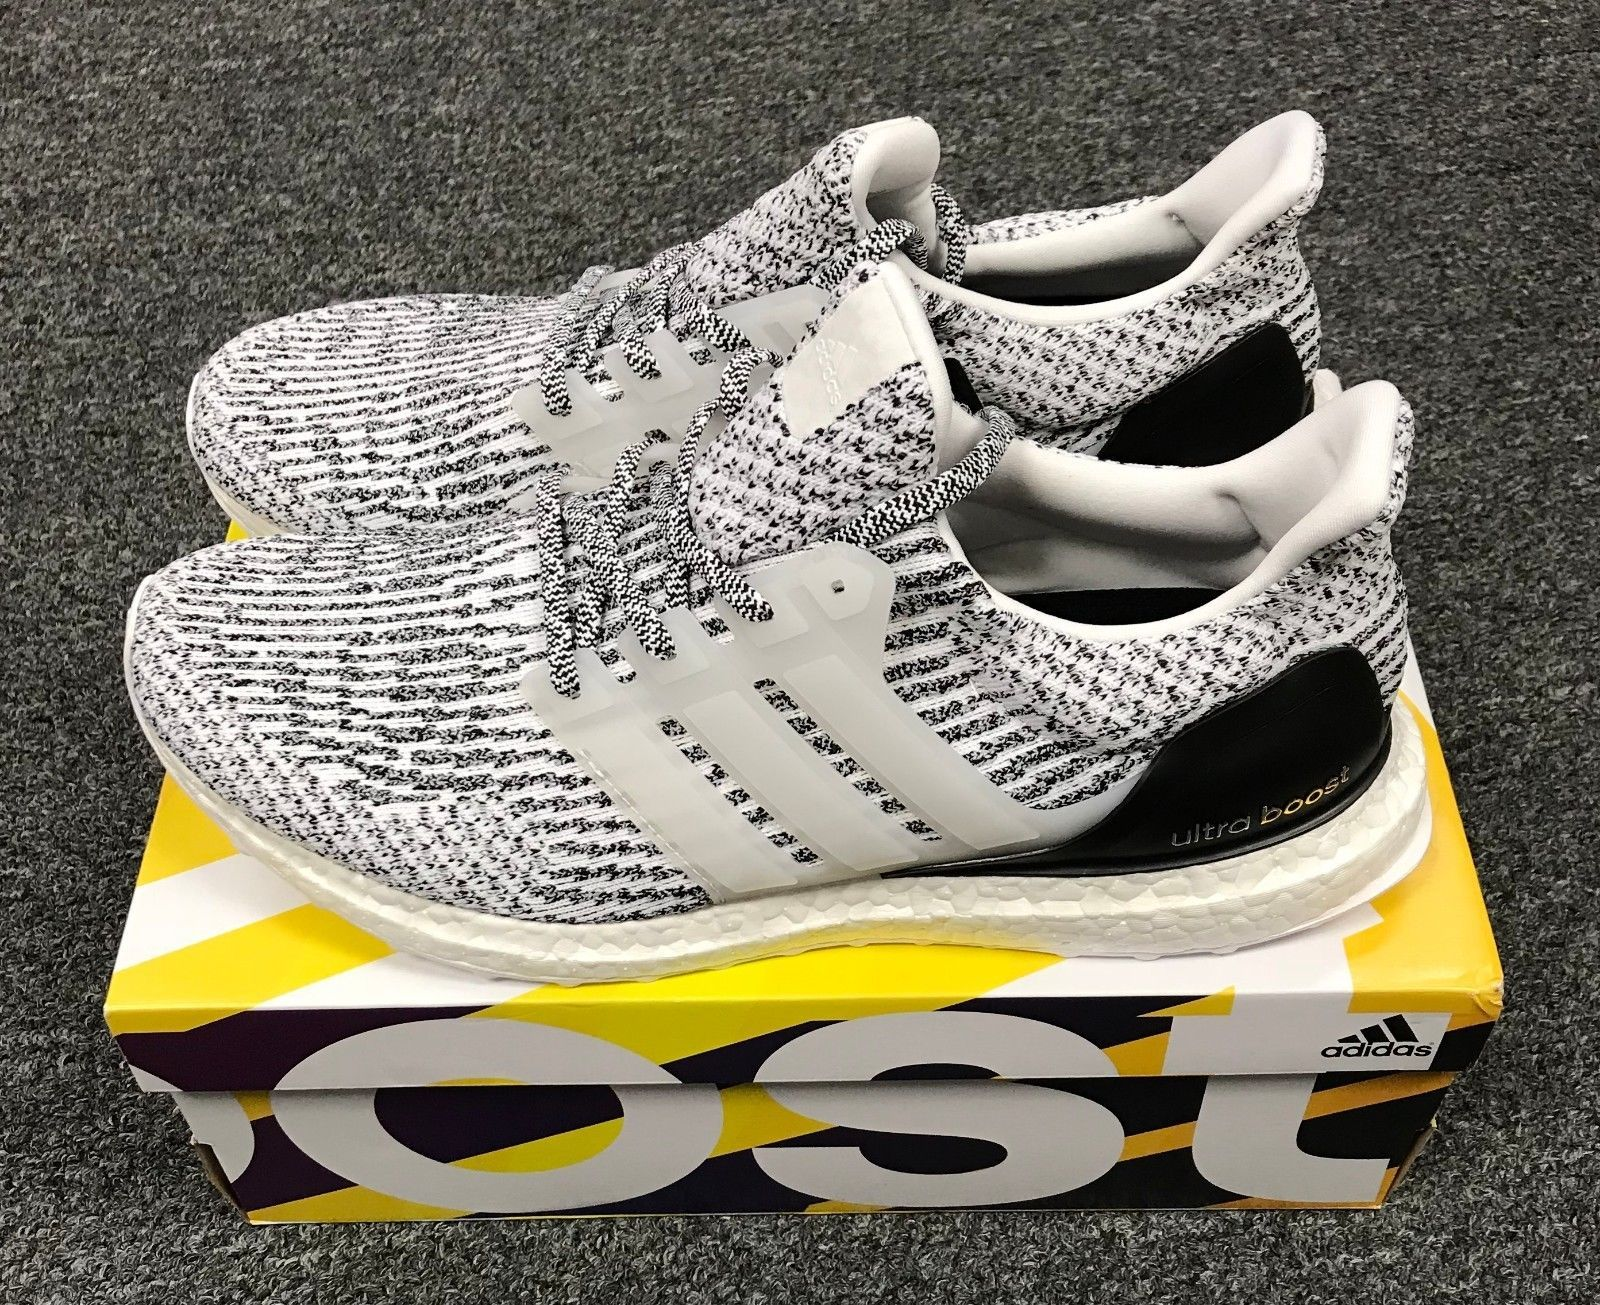 ccfc4822d35e1 Details about Adidas Ultra Boost 3.0 Oreo Zebra Size 11. S80636 ...